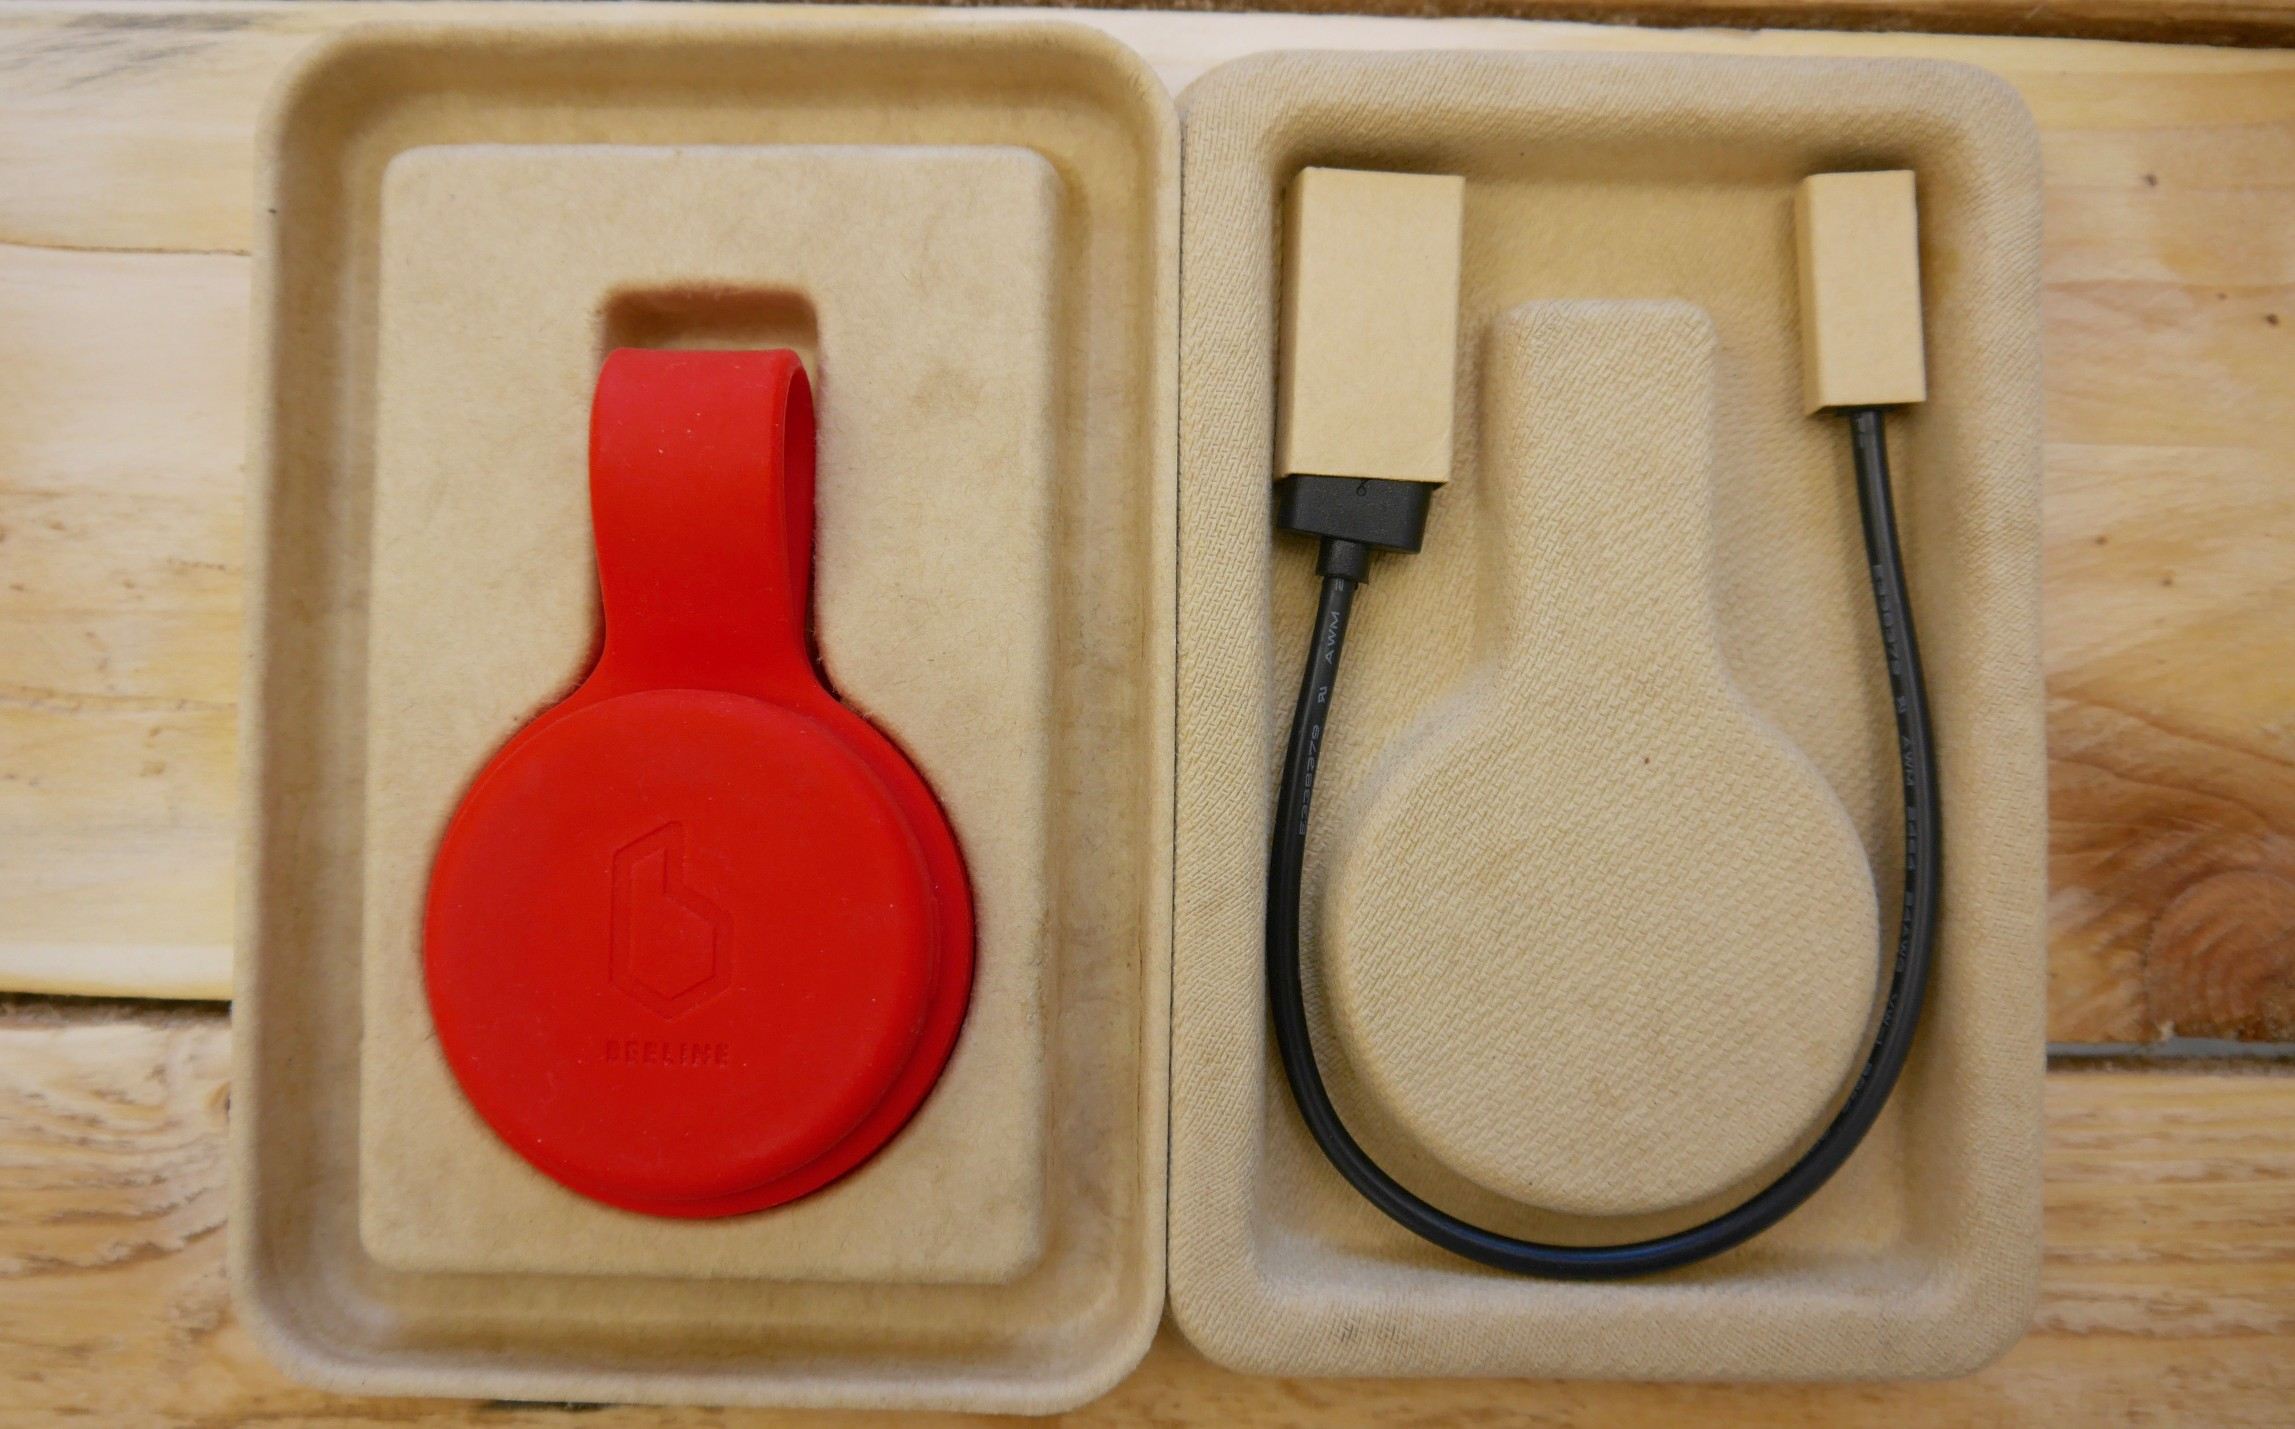 Beeline Velo package open to show where the micro USB charging cable is